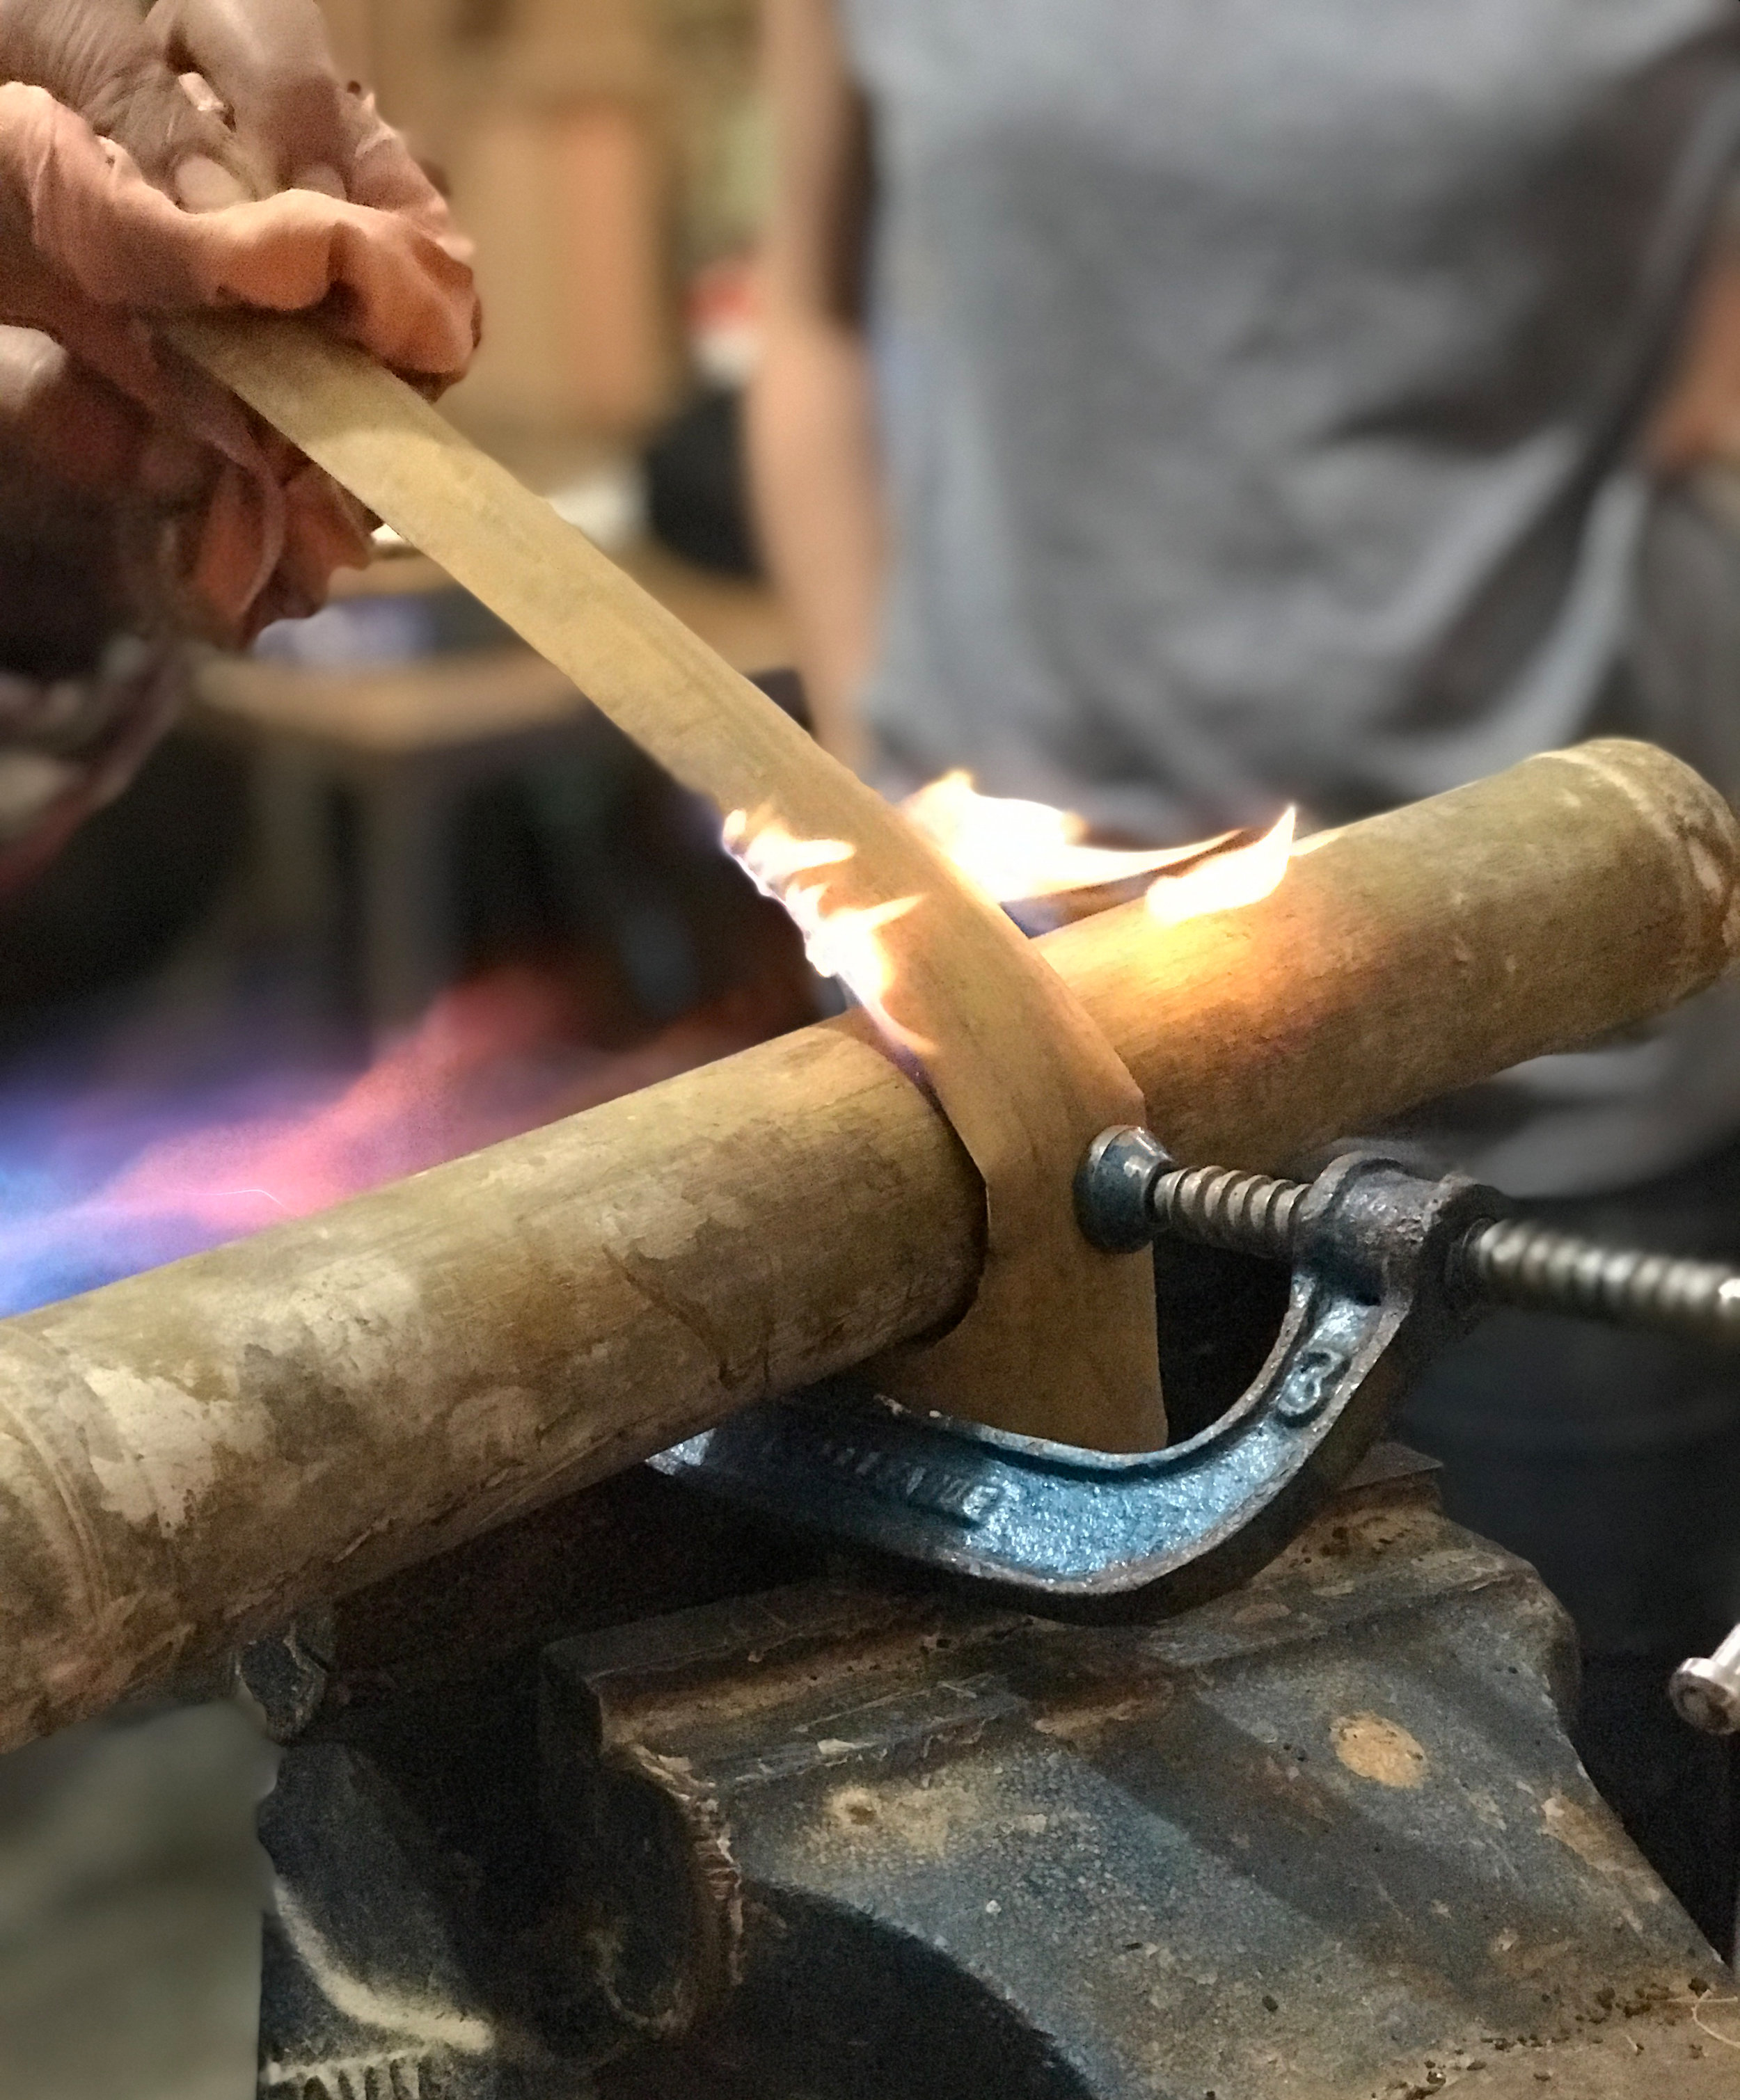 Bending bamboo with heat.